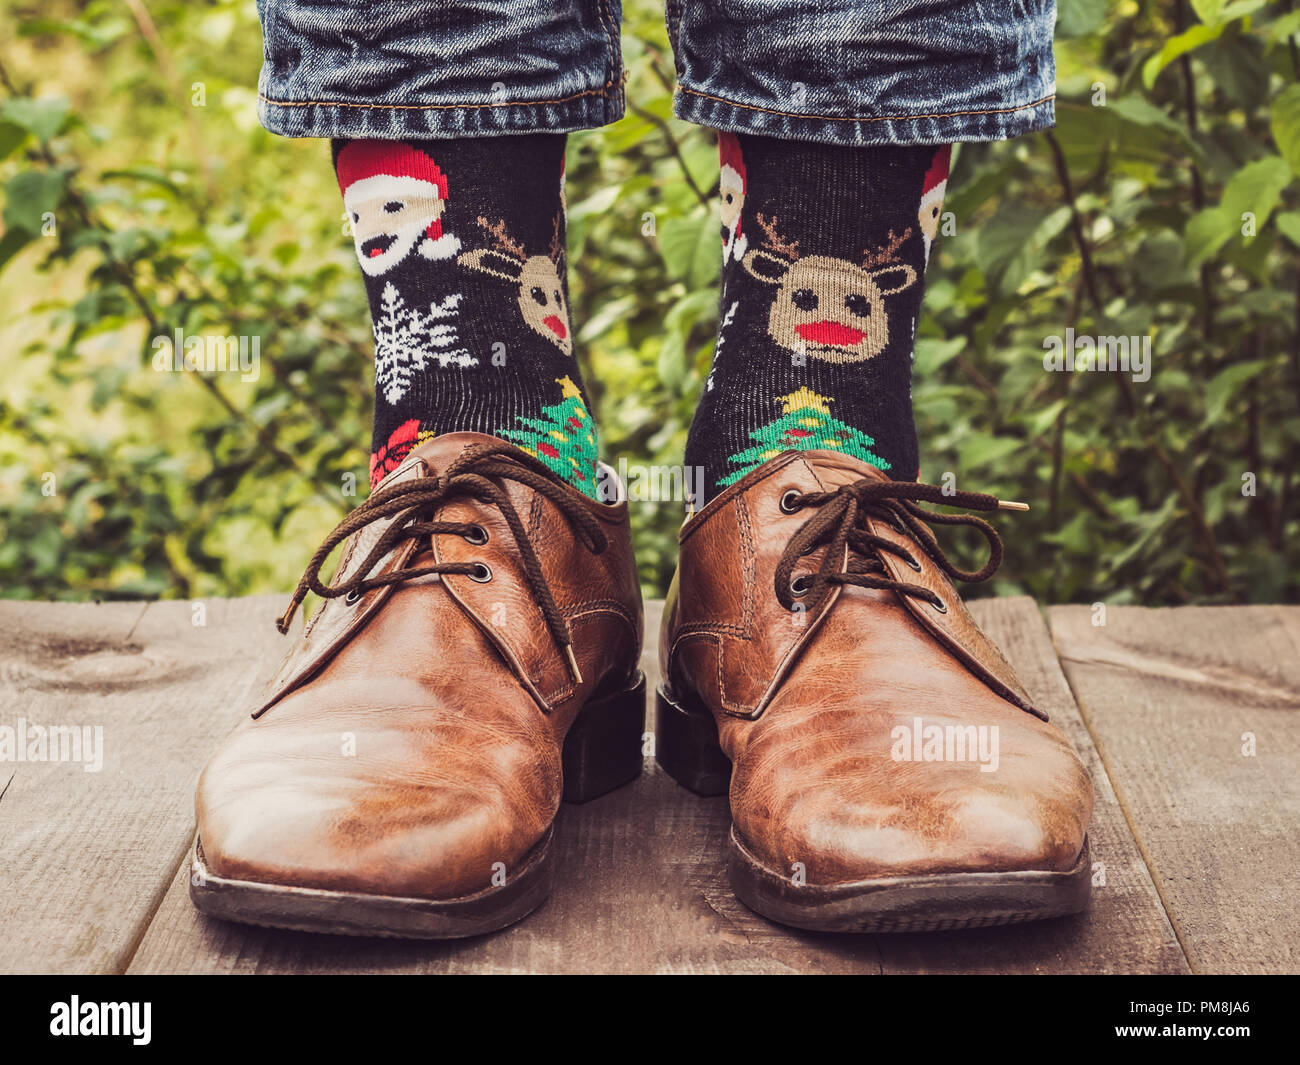 Old Leather Shoes Blue Socks Stockfotos & Old Leather Shoes Blue ...